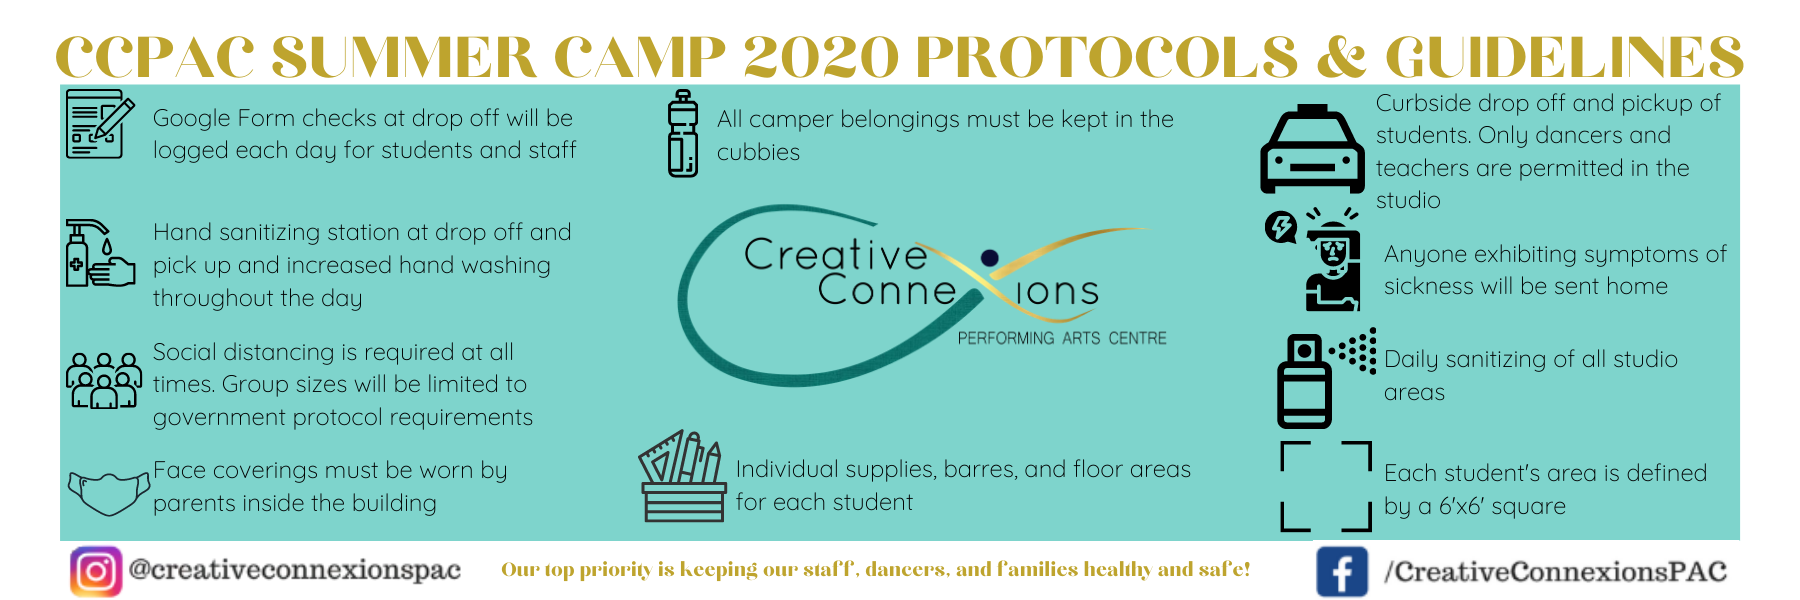 Copy of CCPAC SUMMER CAMP 2020 PROTOCOLS & GUIDELINES (1)